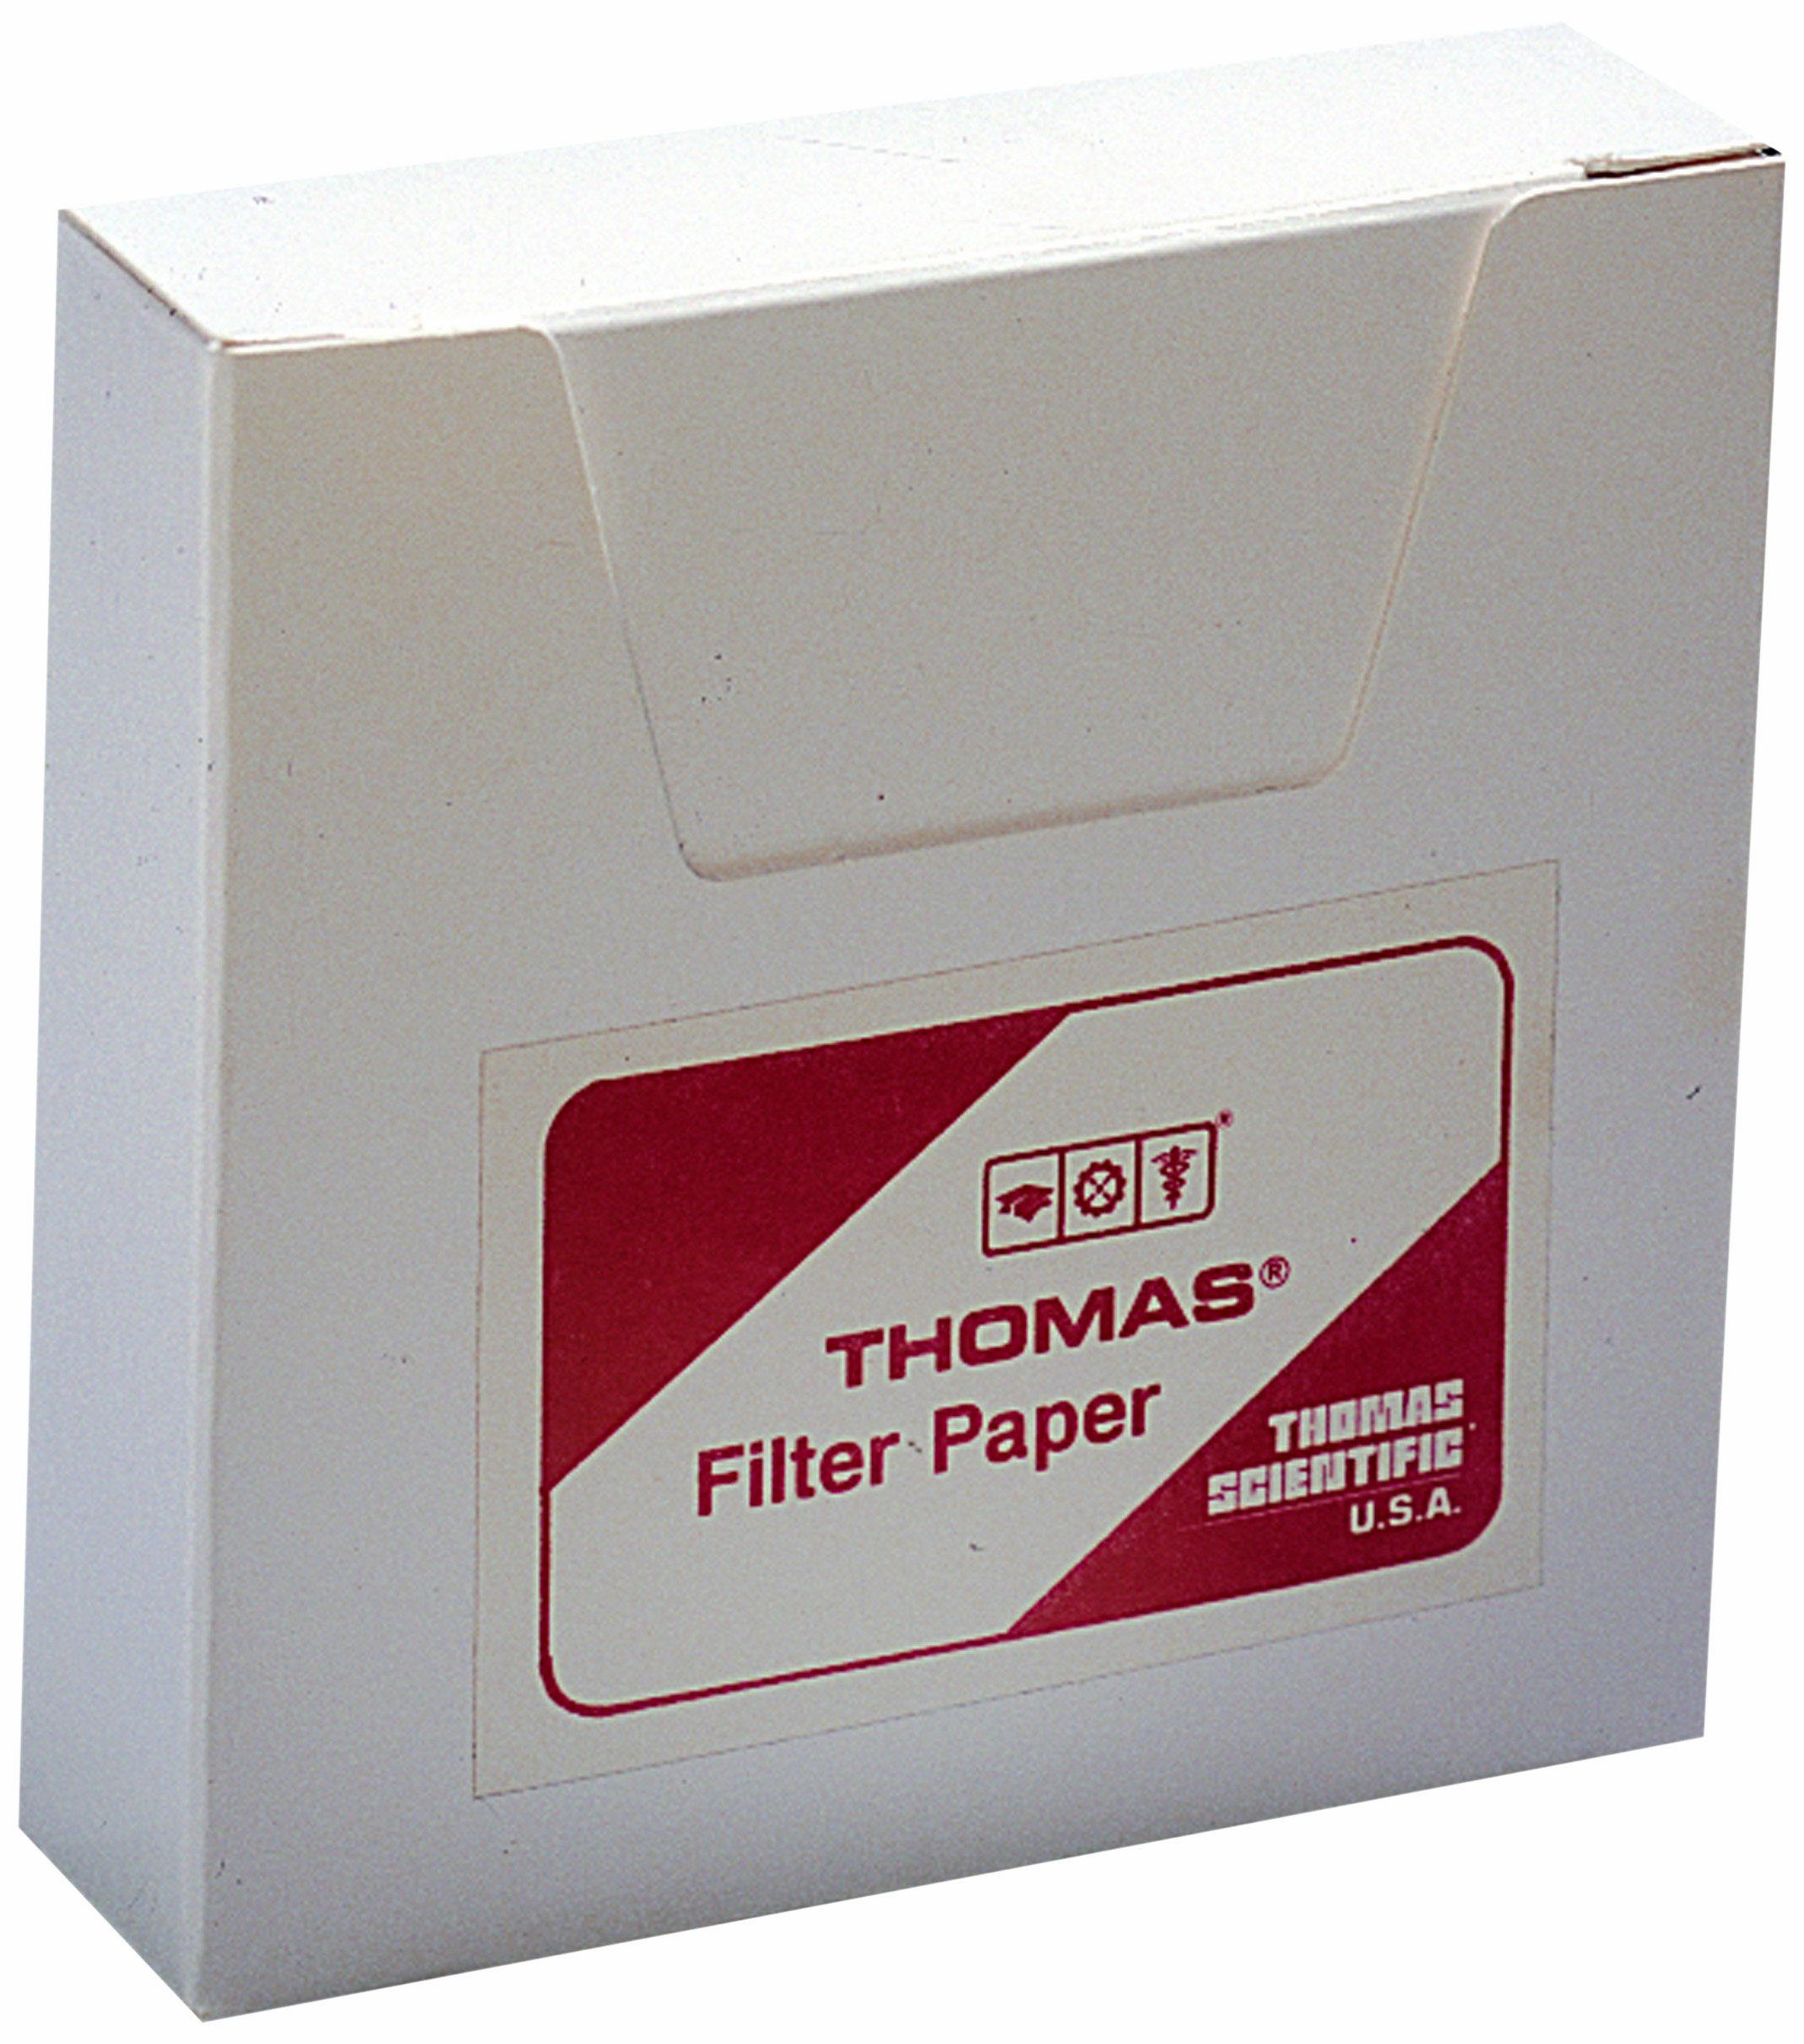 Thomas 6100-1500 Qualitative Filter Paper, 1.5 Micron, Grade, 15cm Diameter x 0.15mm Thick (Pack of 100) by Thomas